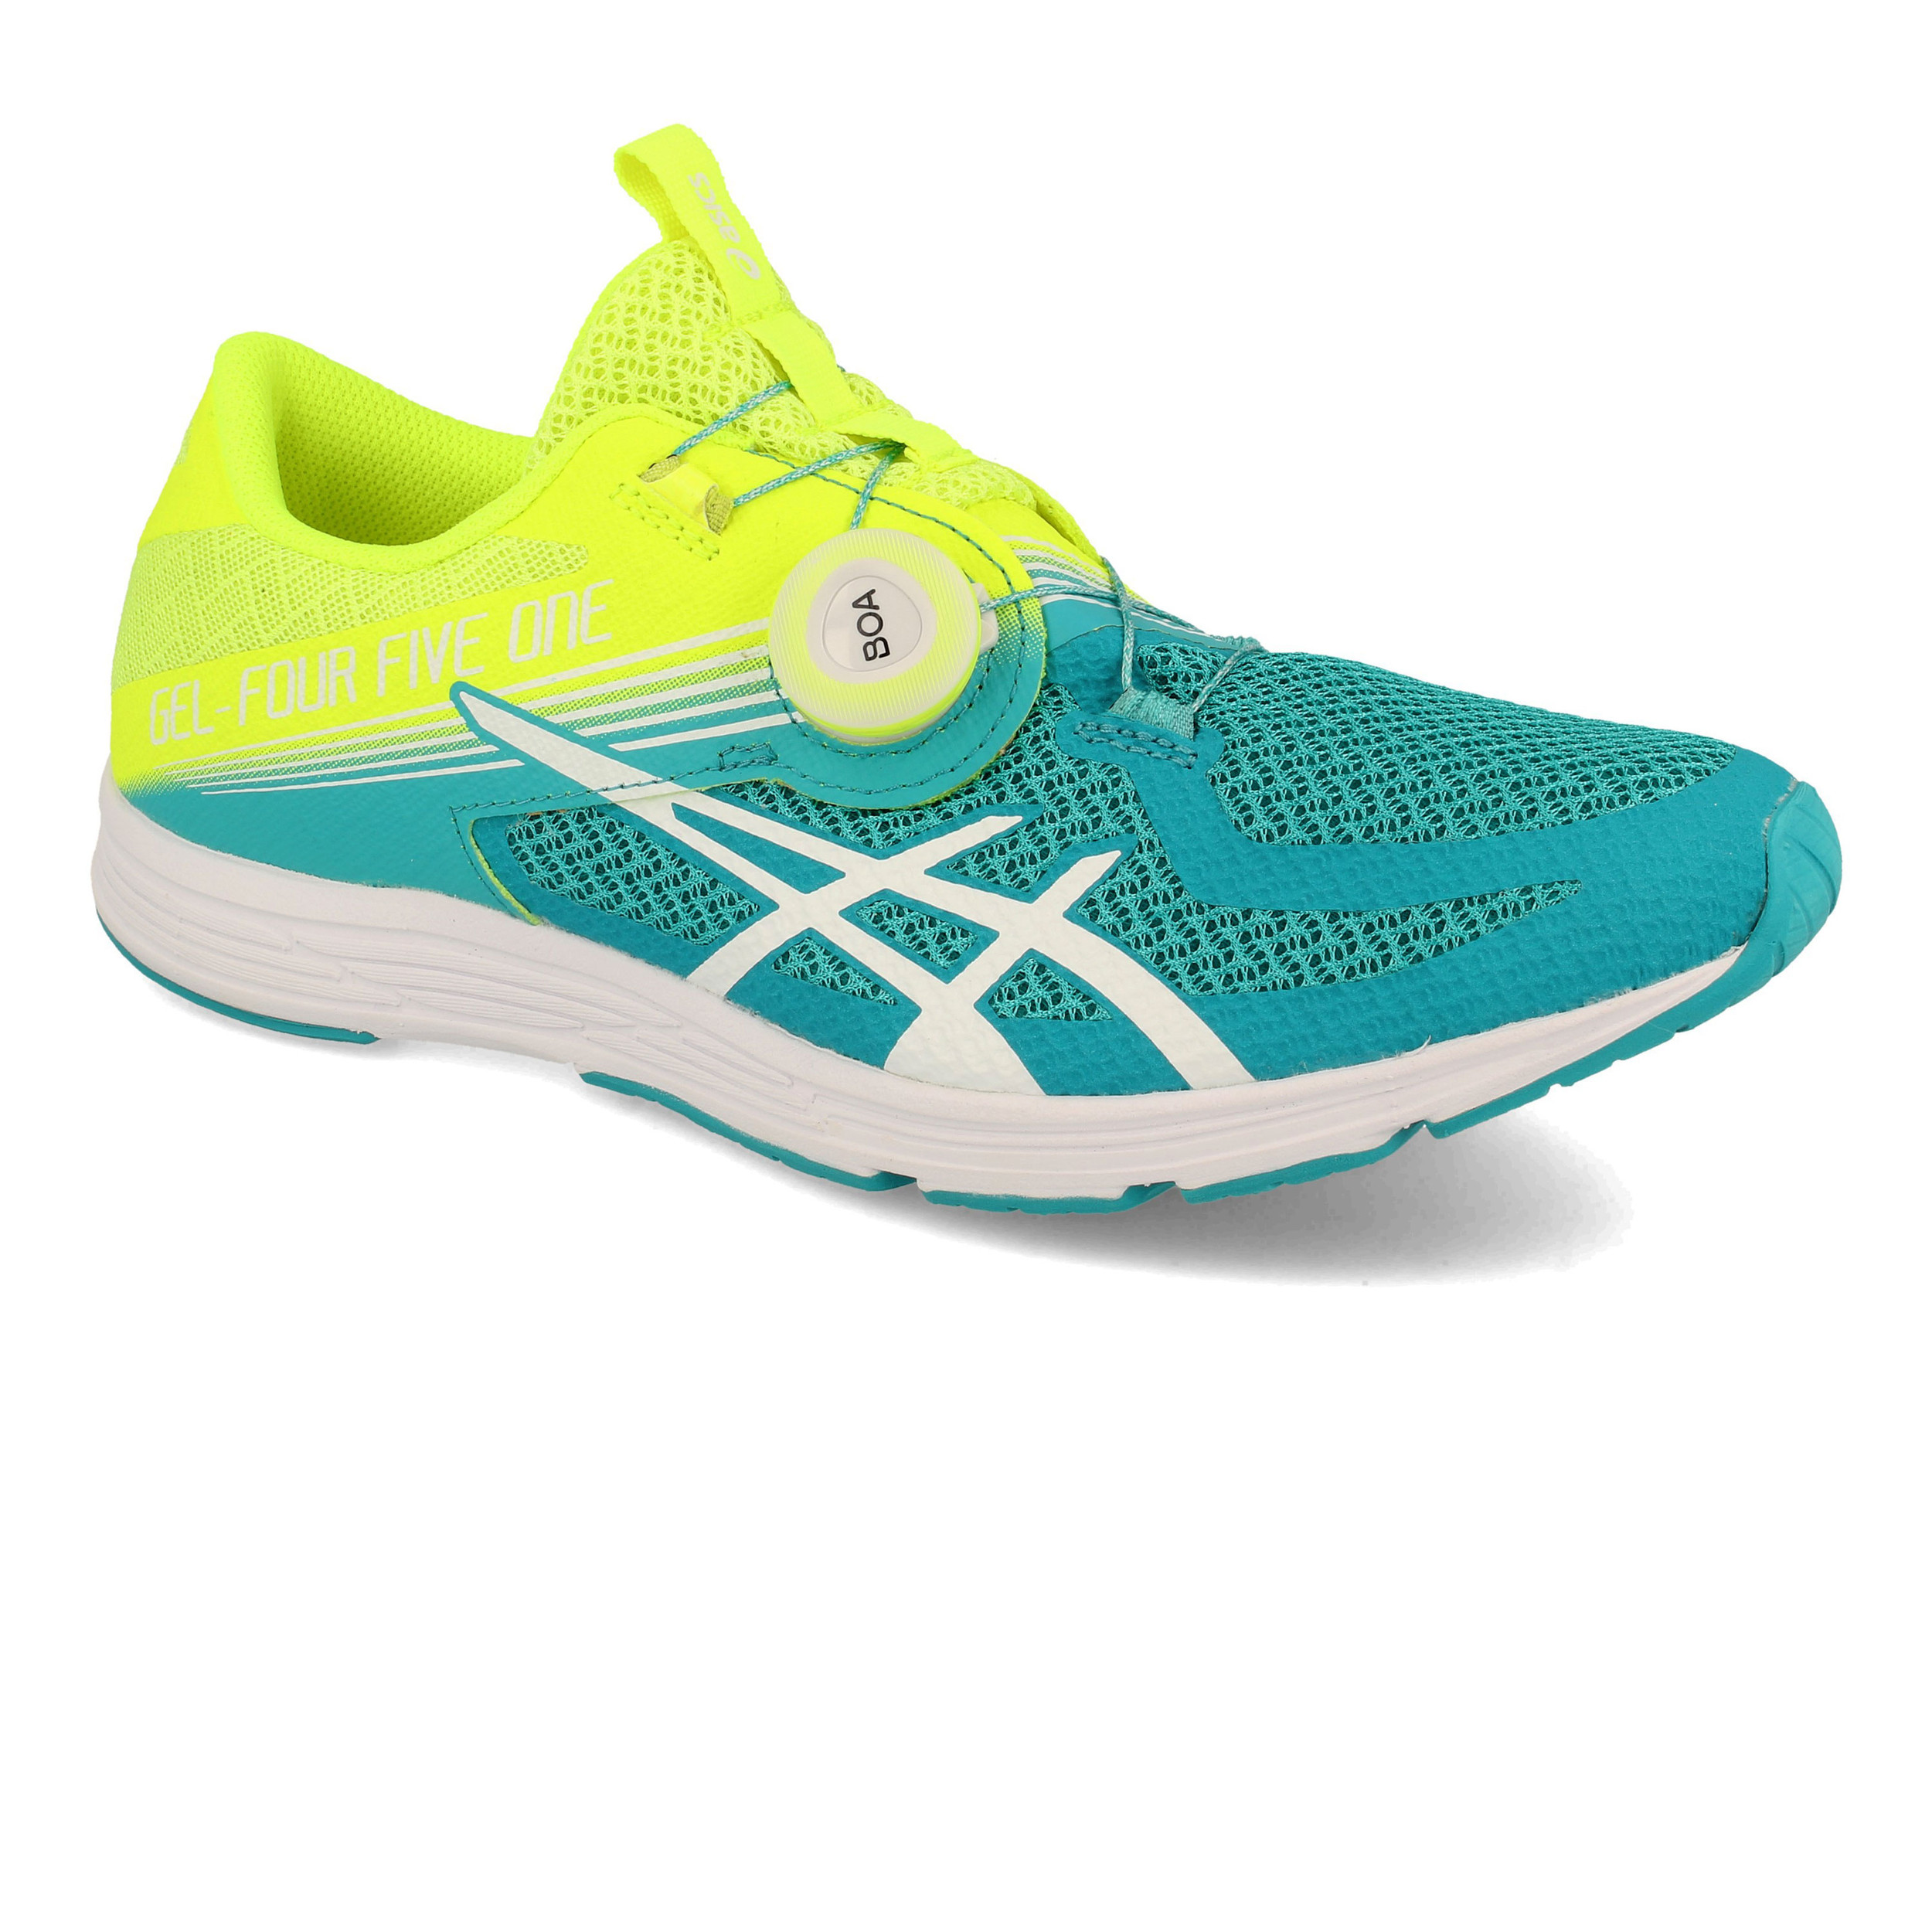 Details about Asics Womens GEL-451 Running Shoes Trainers Sneakers Blue  Yellow Sports